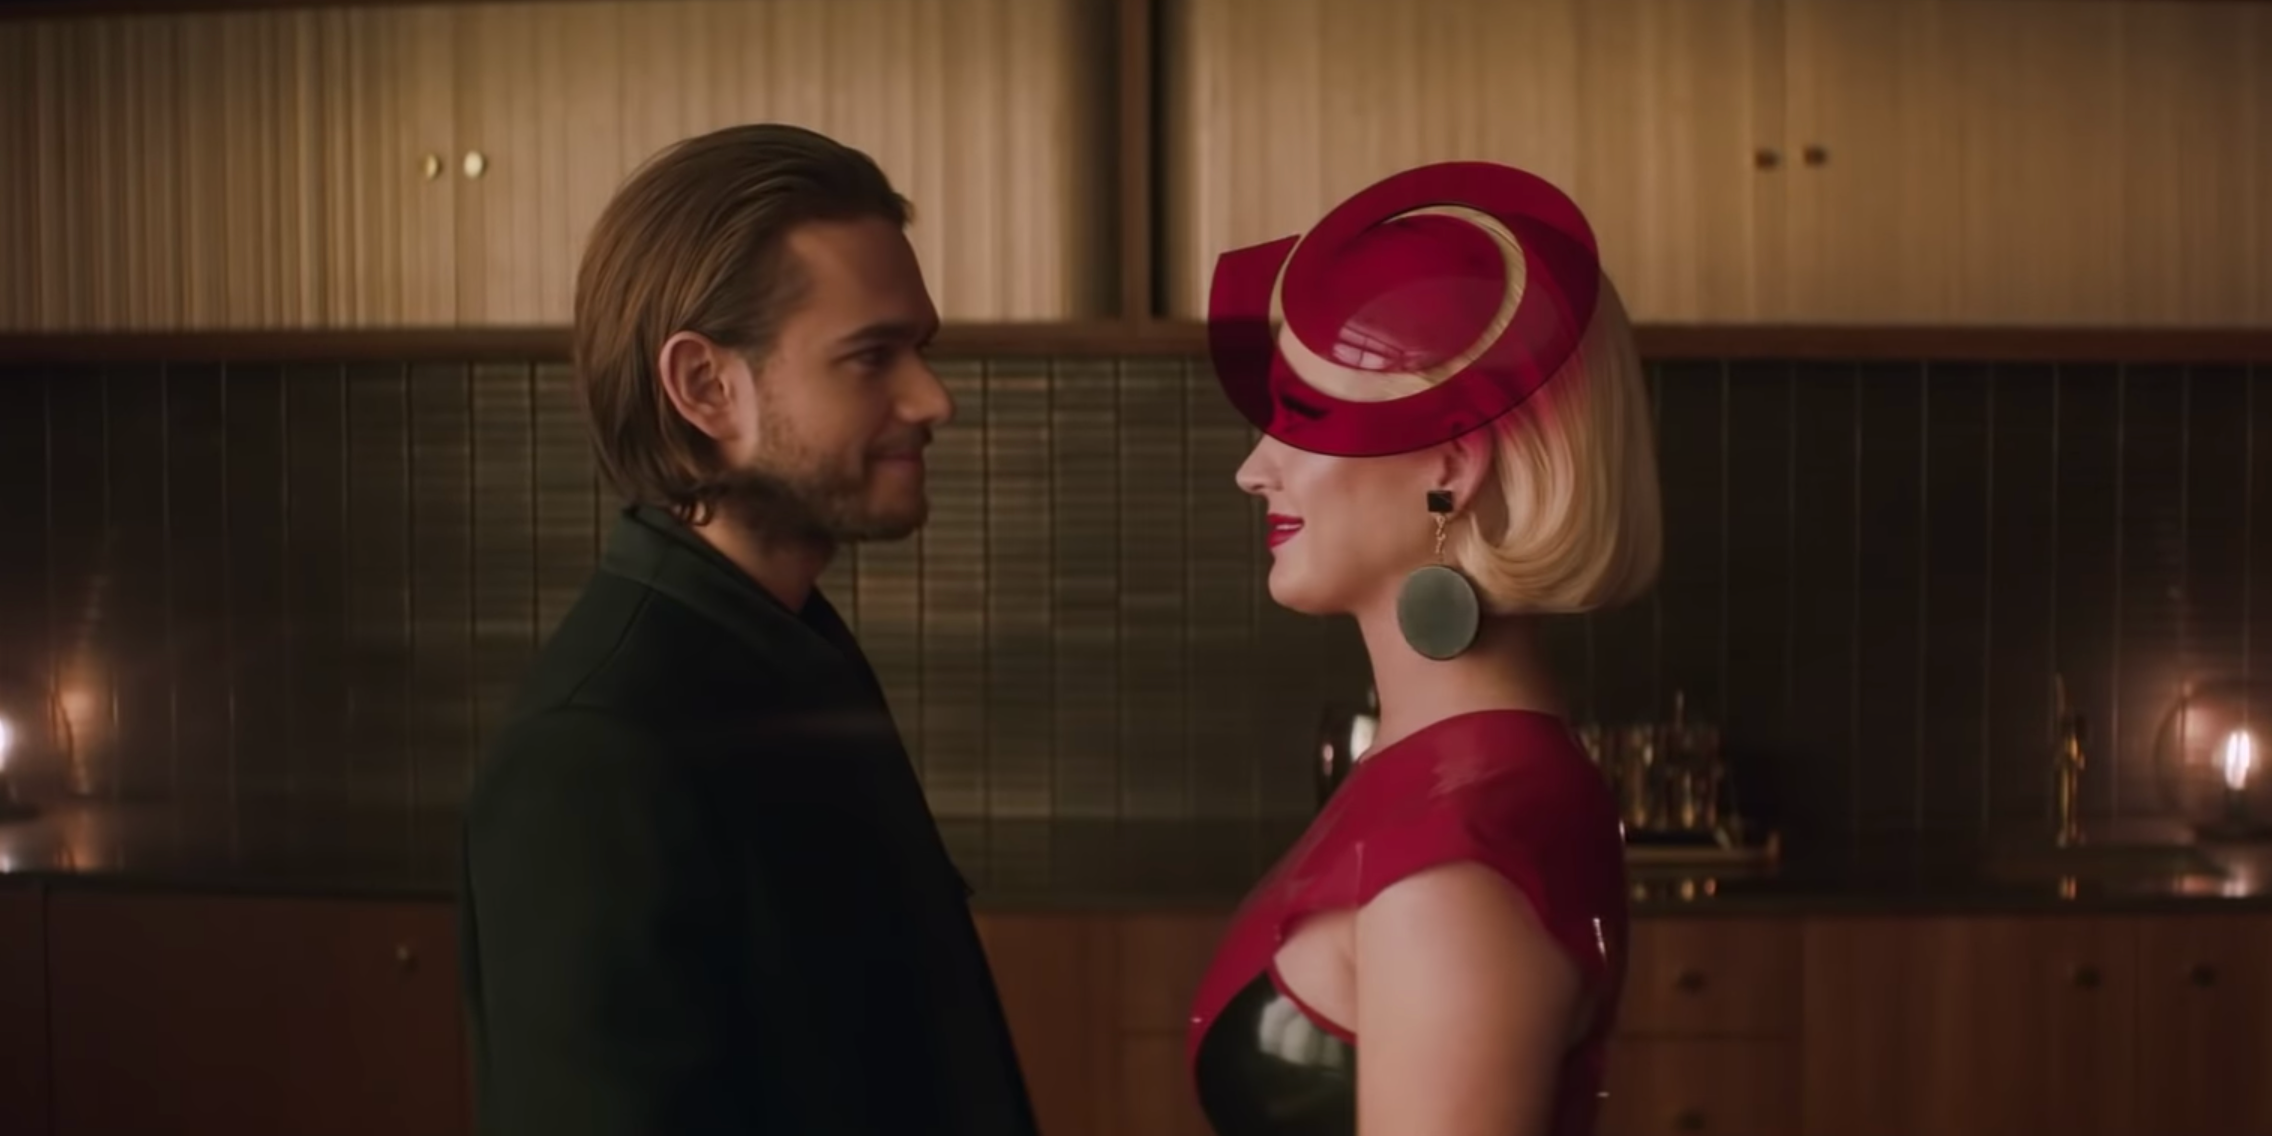 Zedd dates an obsessive AI version of Katy Perry in music video for '365' – watch